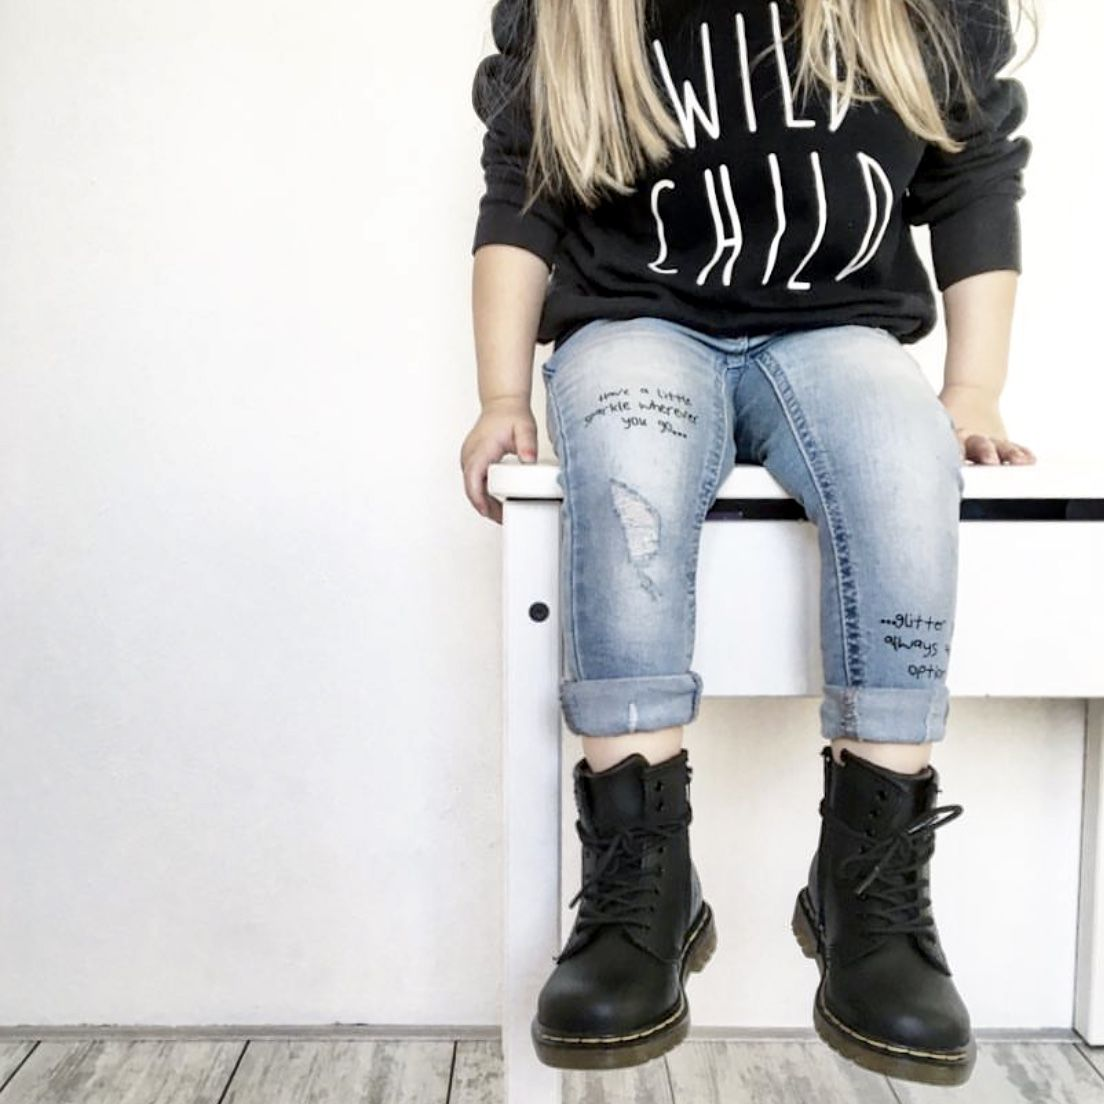 Wild Child Sweatshirt - product images  of